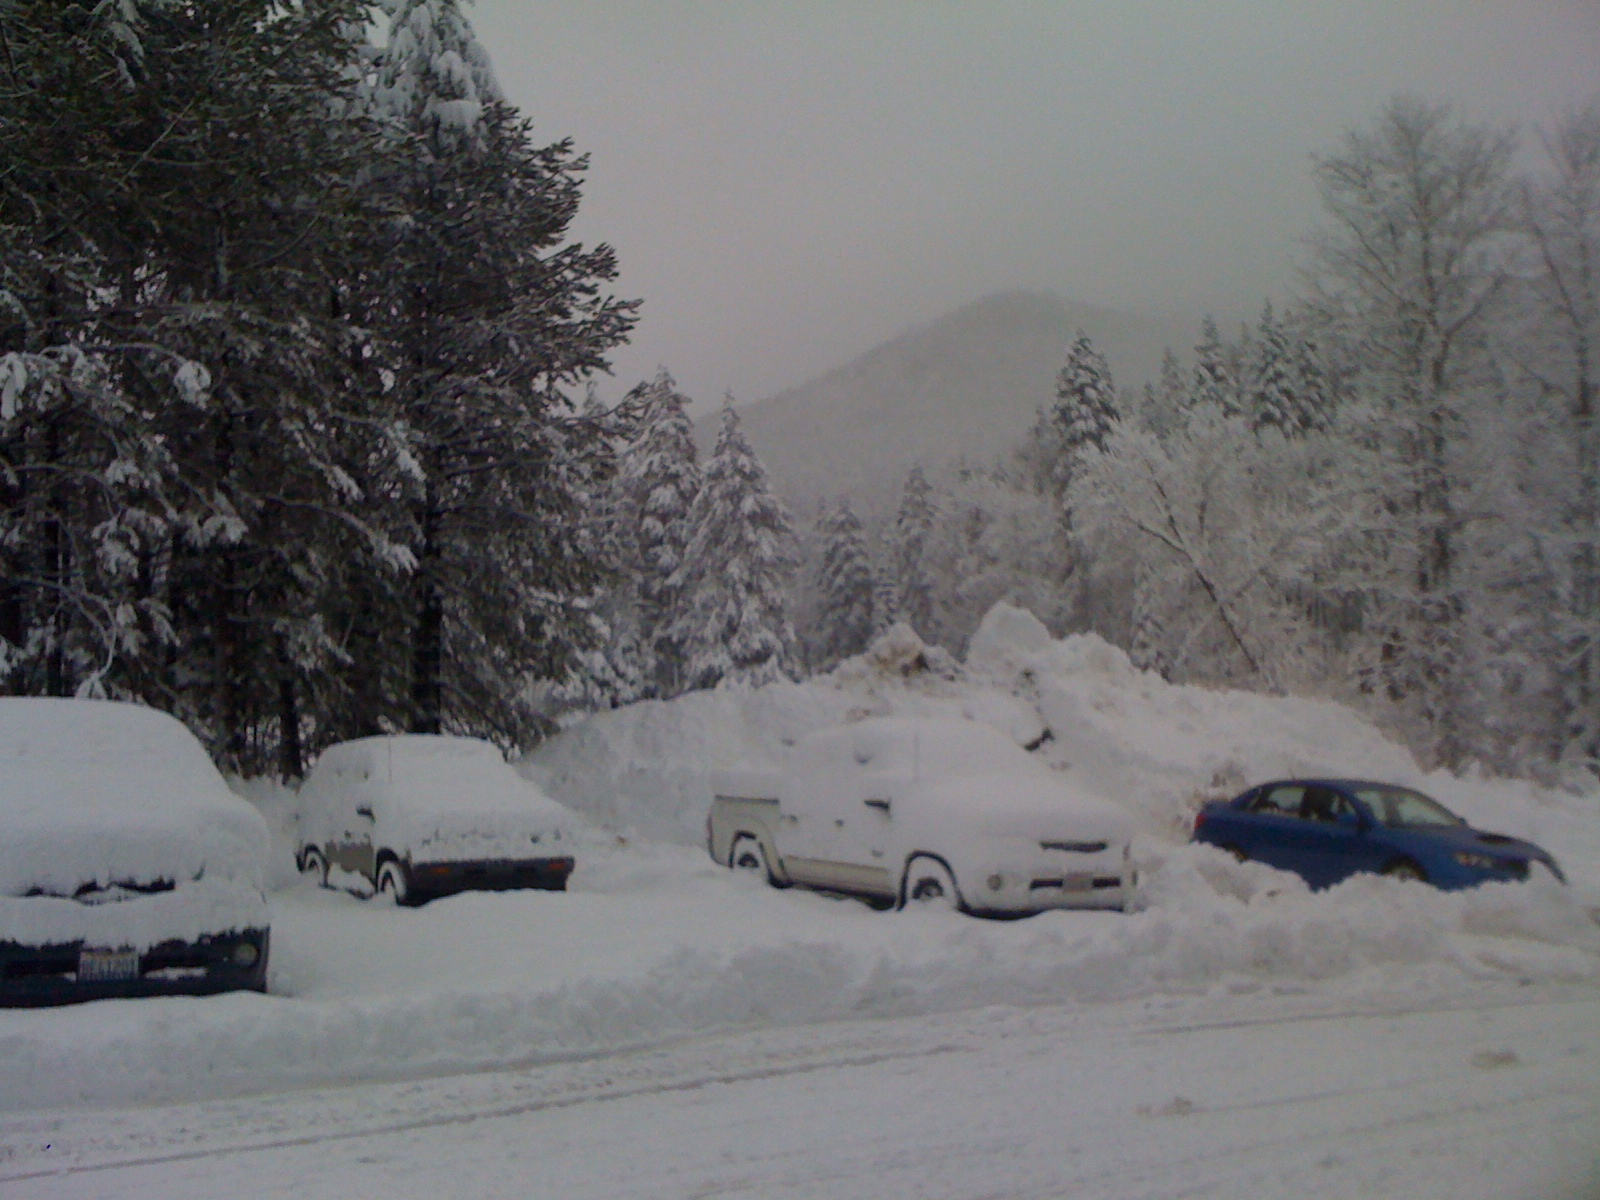 winter parking lot - .25 miles from house